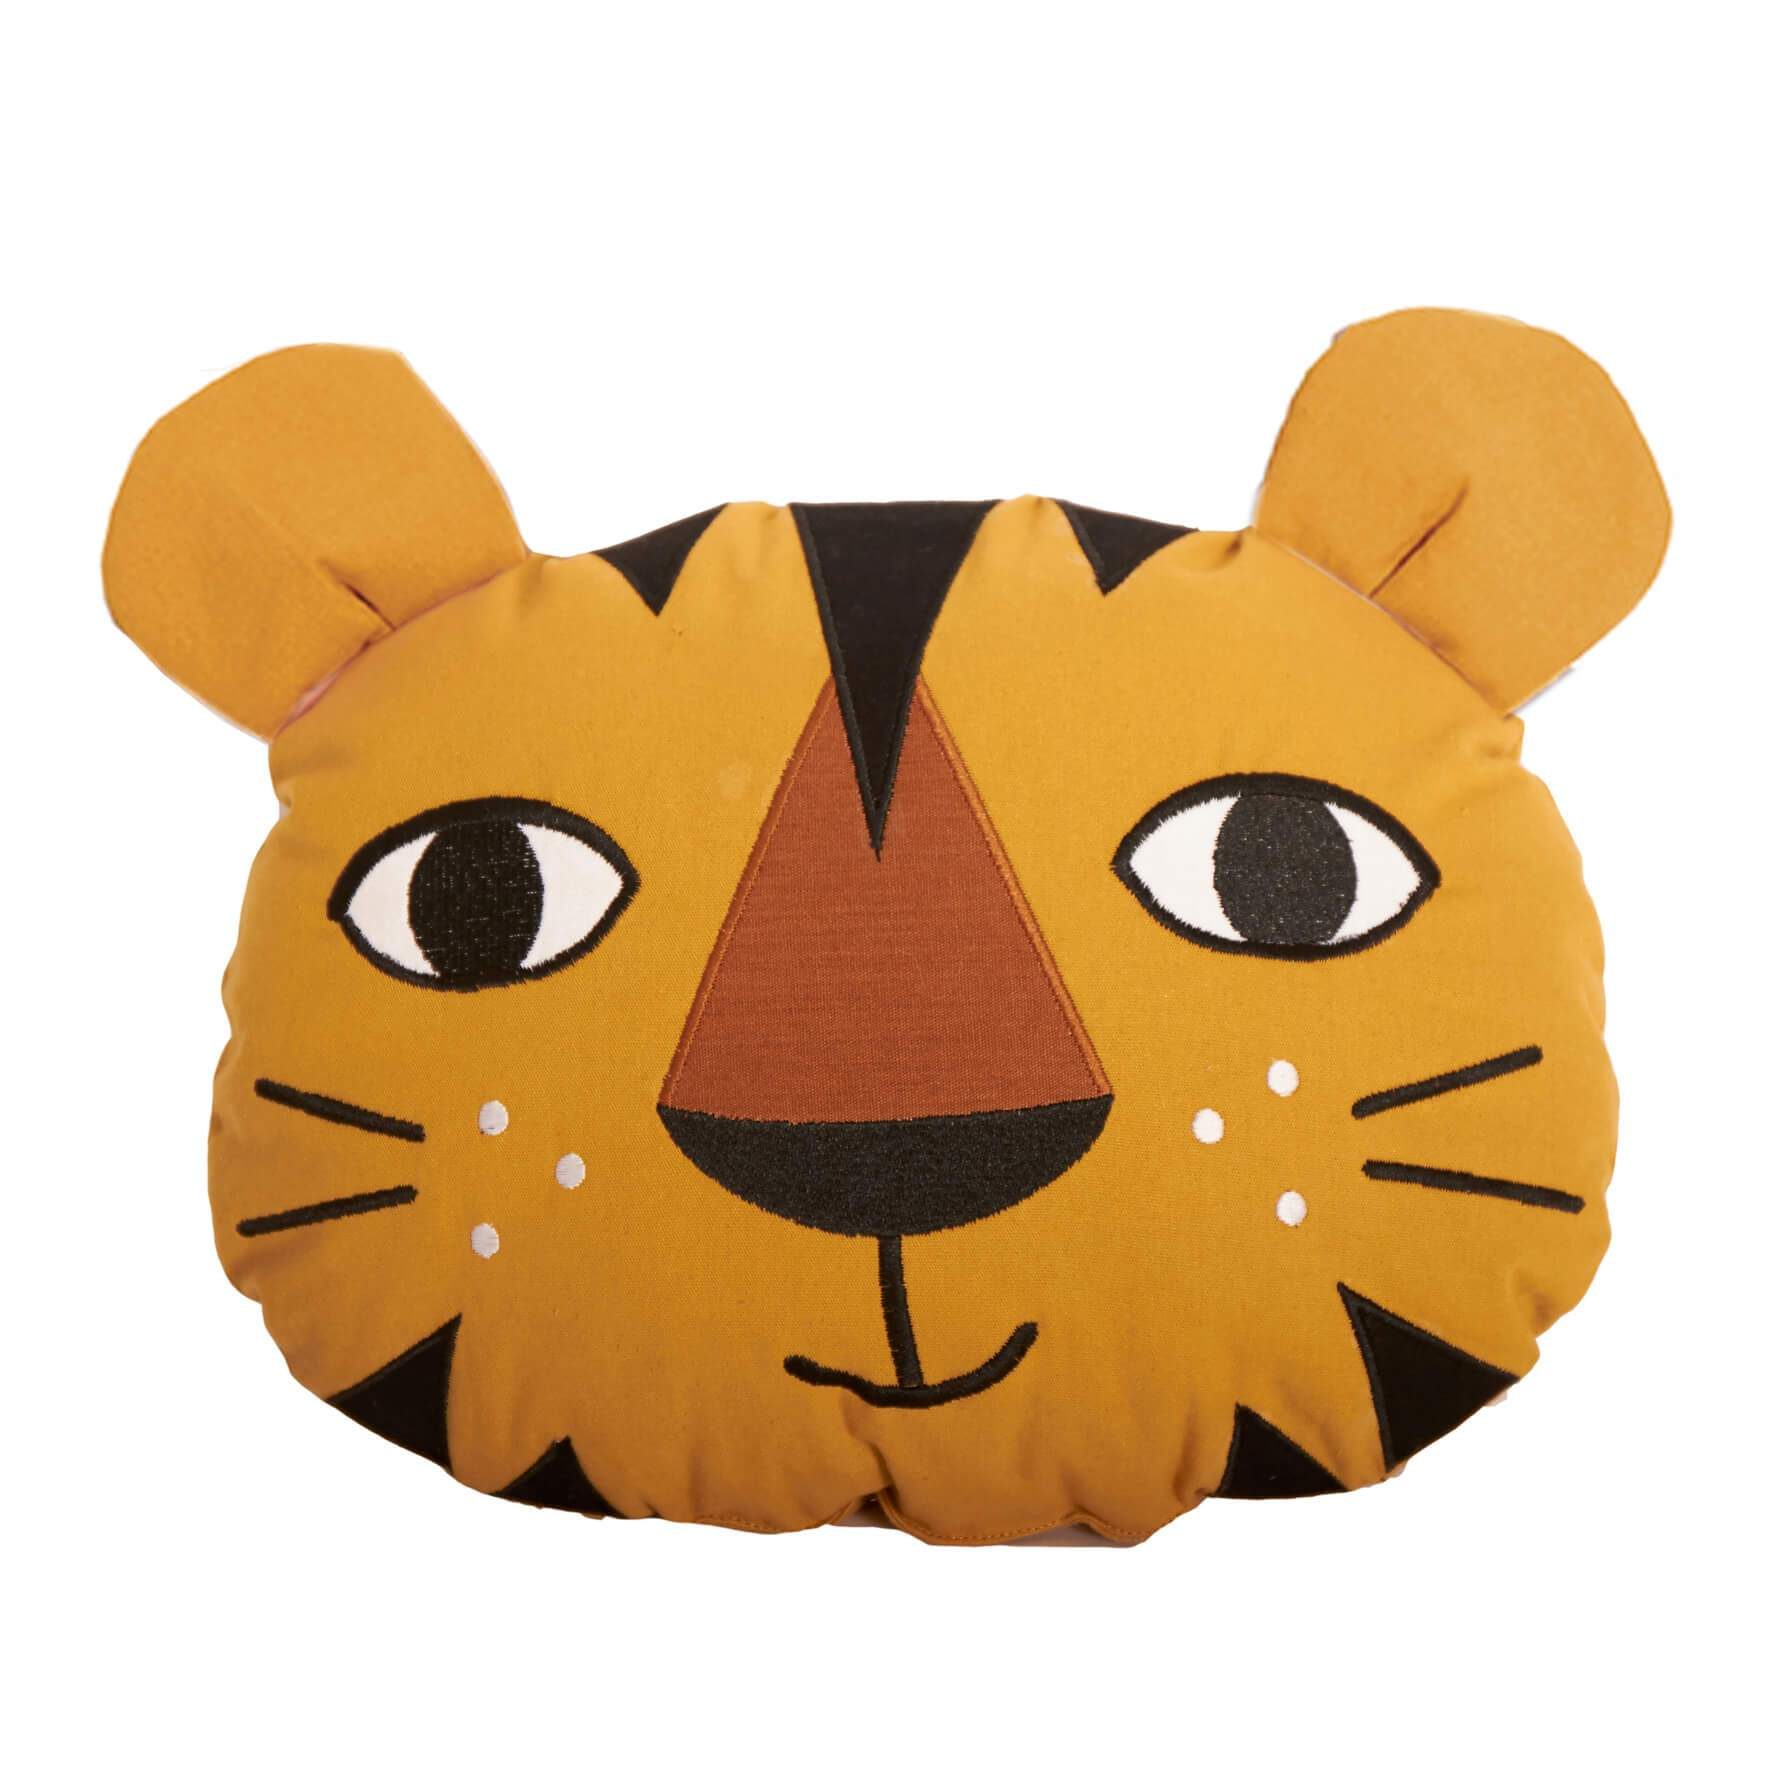 Room Mate Tiger Cushion